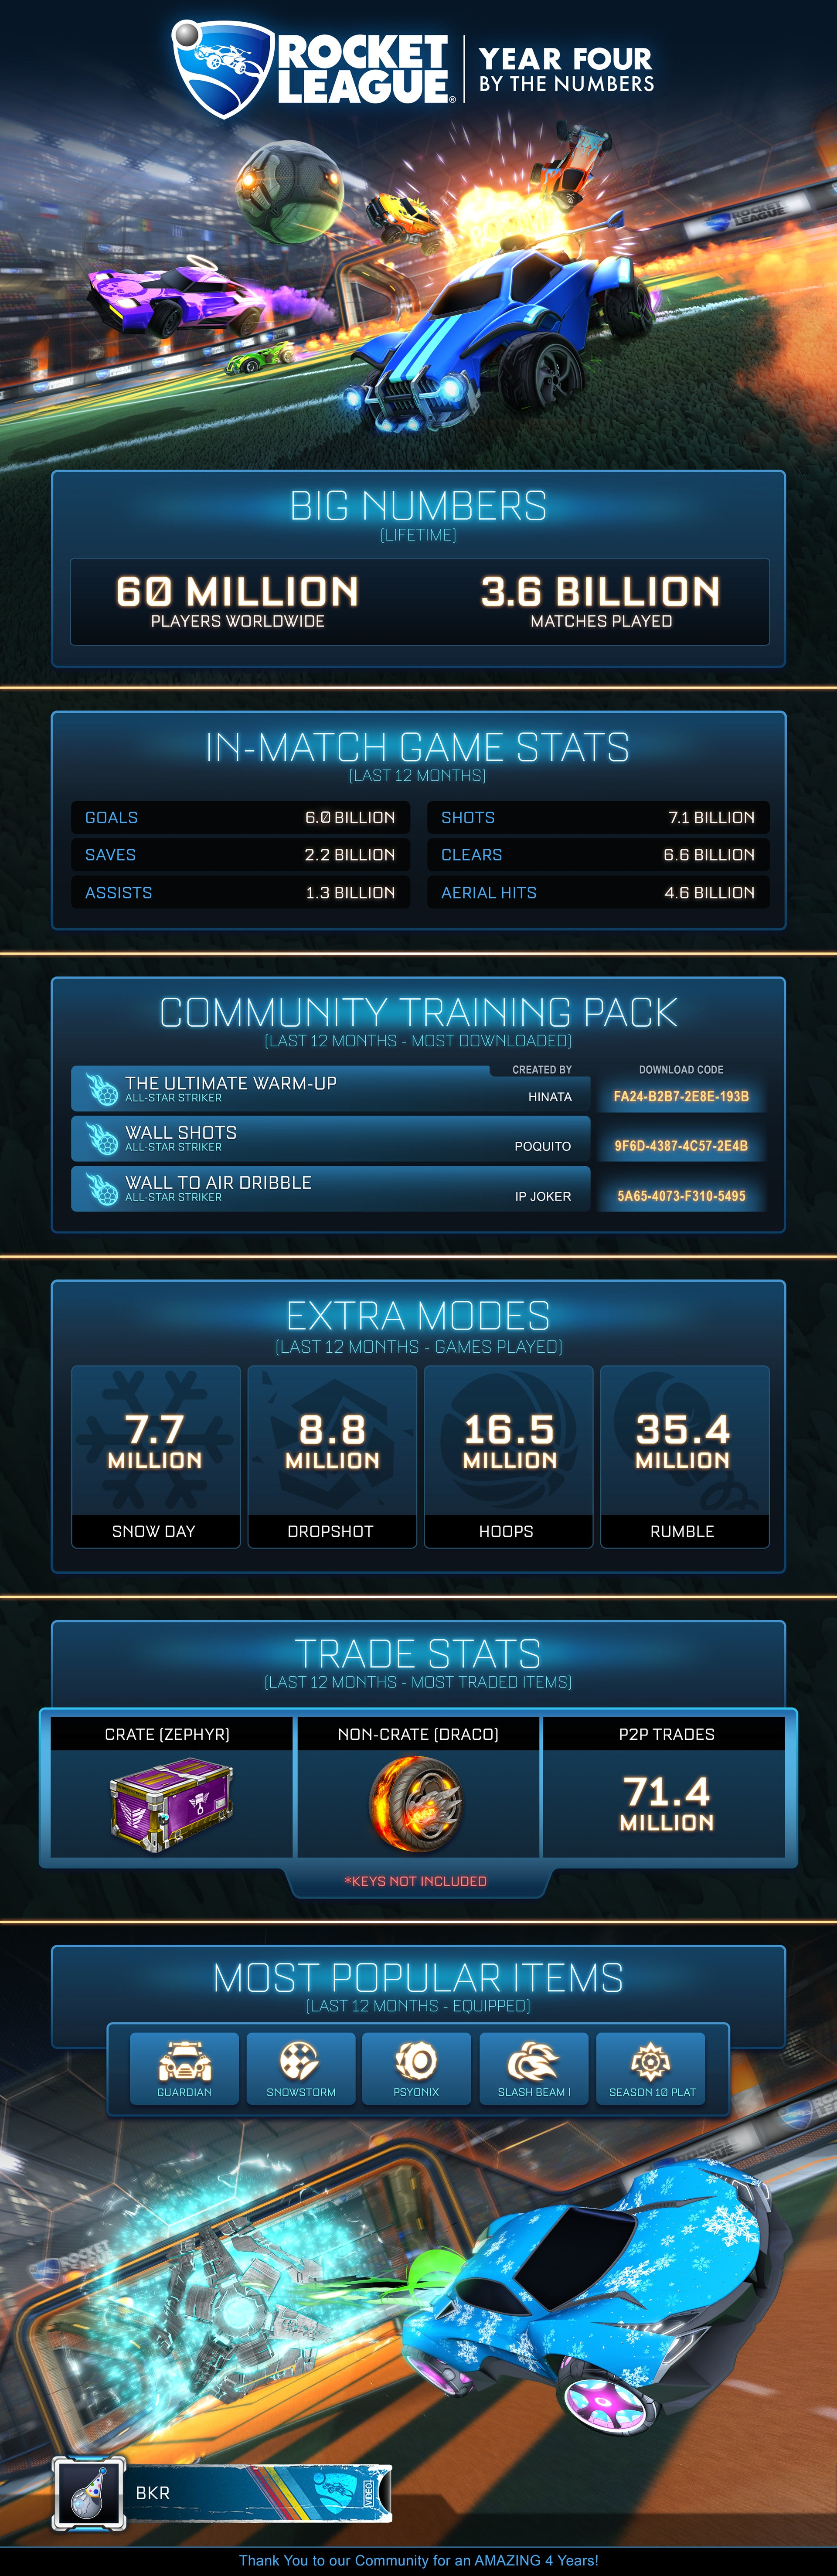 IMAGE(https://rocketleague.media.zestyio.com/rl-year-4_infographic_tall_deliverable--1-.jpg)